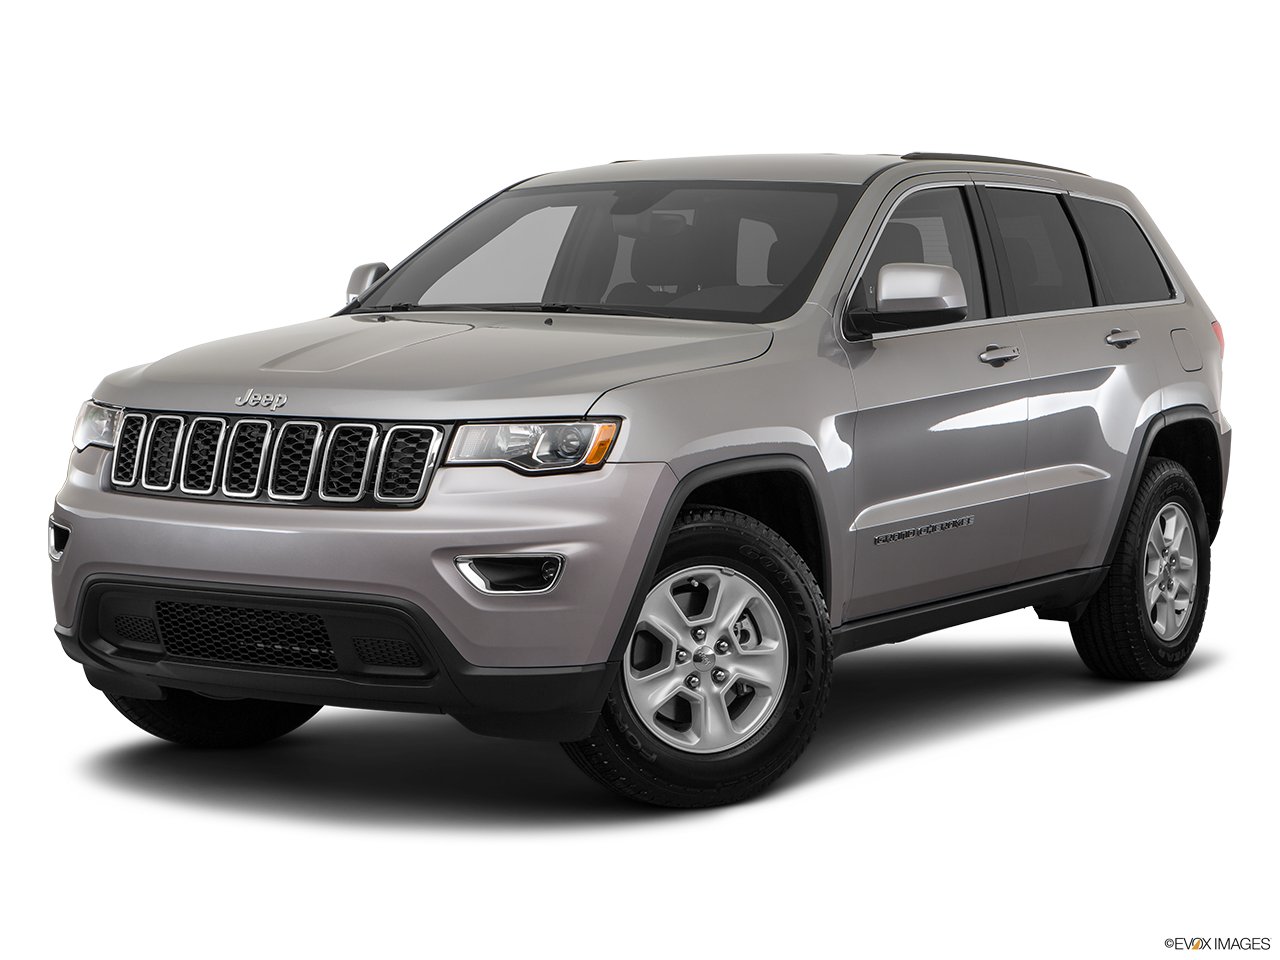 2017 jeep grand cherokee for sale in philadelphia cherry hill dodge chrysler jeep ram. Black Bedroom Furniture Sets. Home Design Ideas